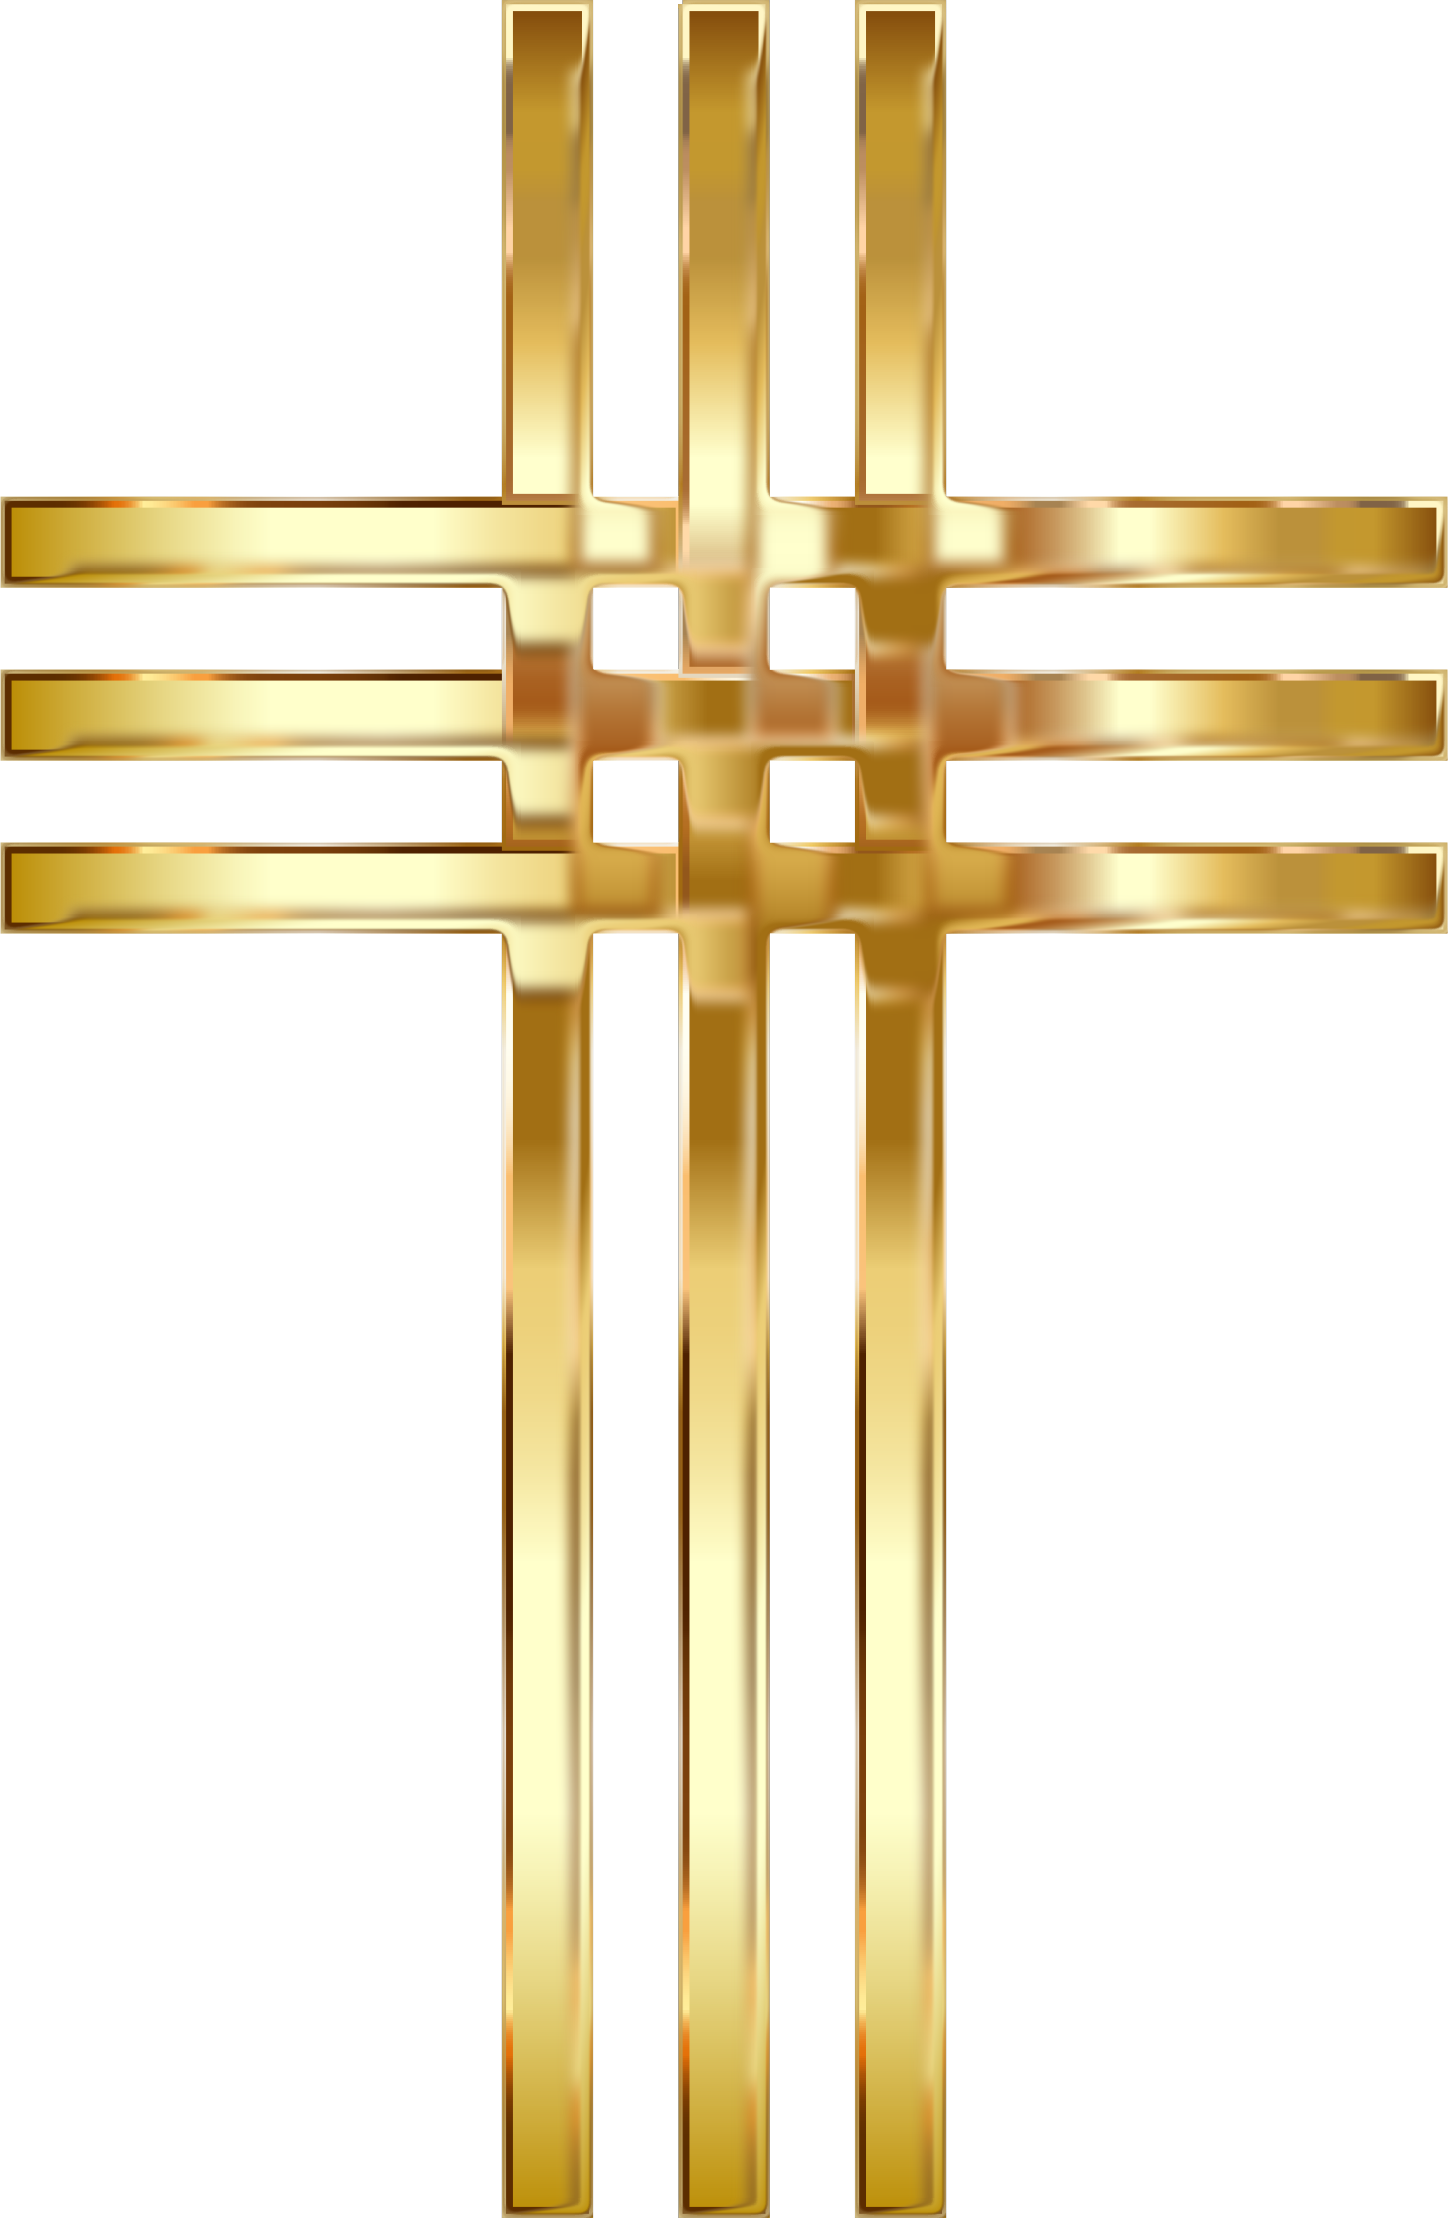 Interlocked Stylized Golden Cross Enhanced No Background by GDJ